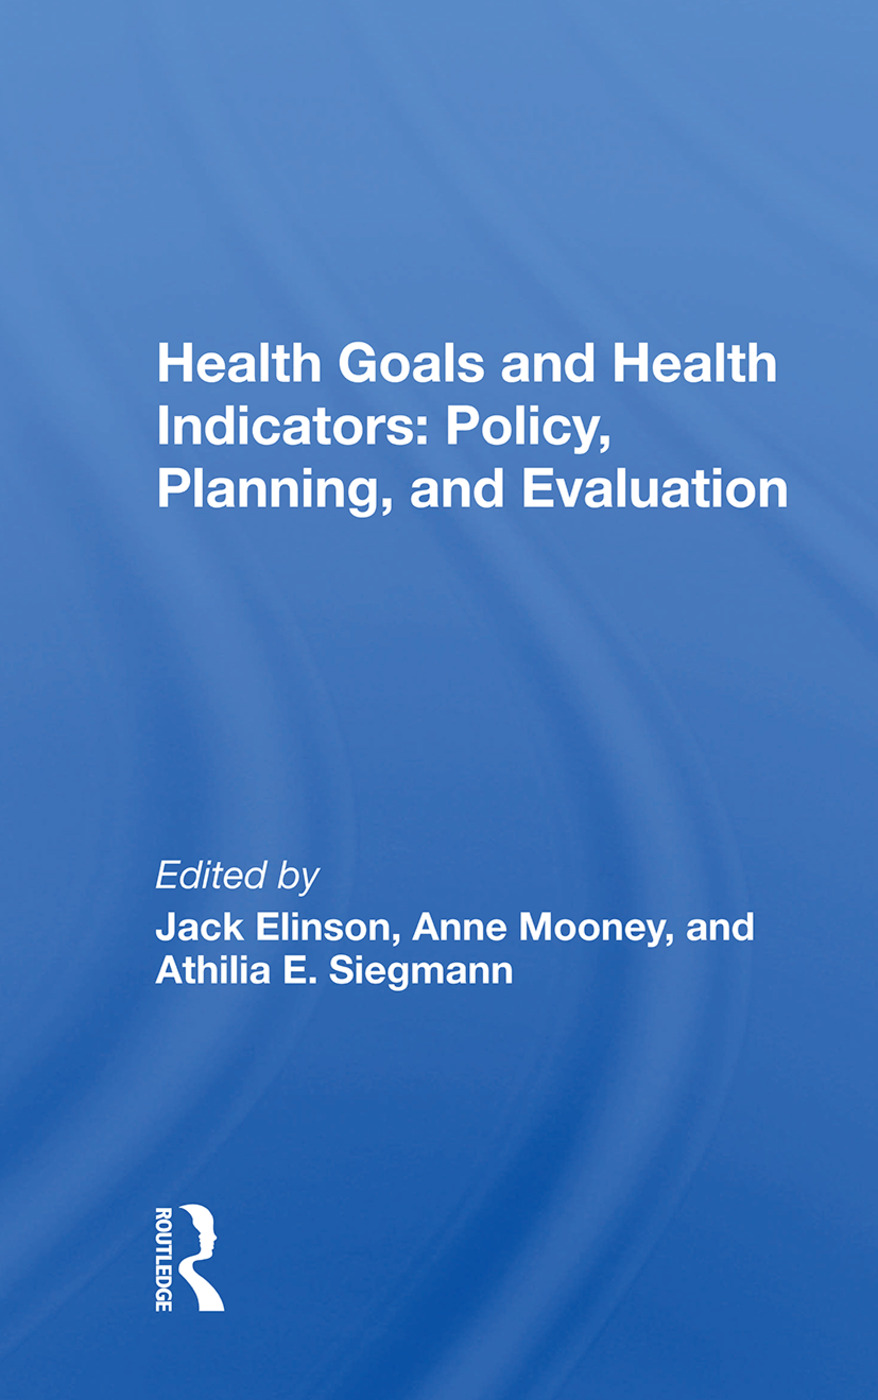 Health Goals And Health Indicators: Policy, Planning, And Evaluation book cover